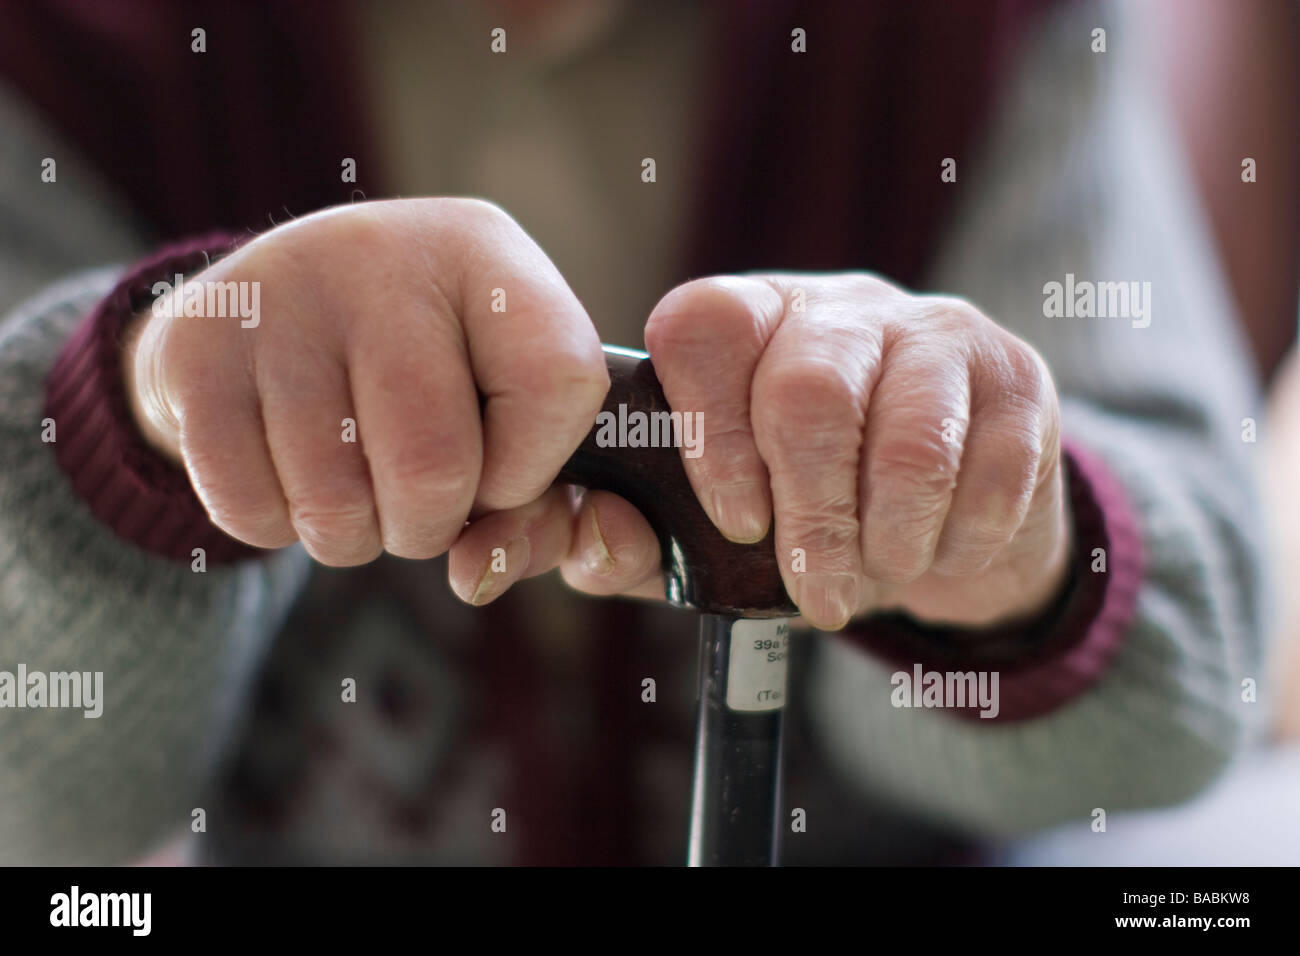 elderly man oap old age pensioner hands clutching walking stick while sitting at home - Stock Image